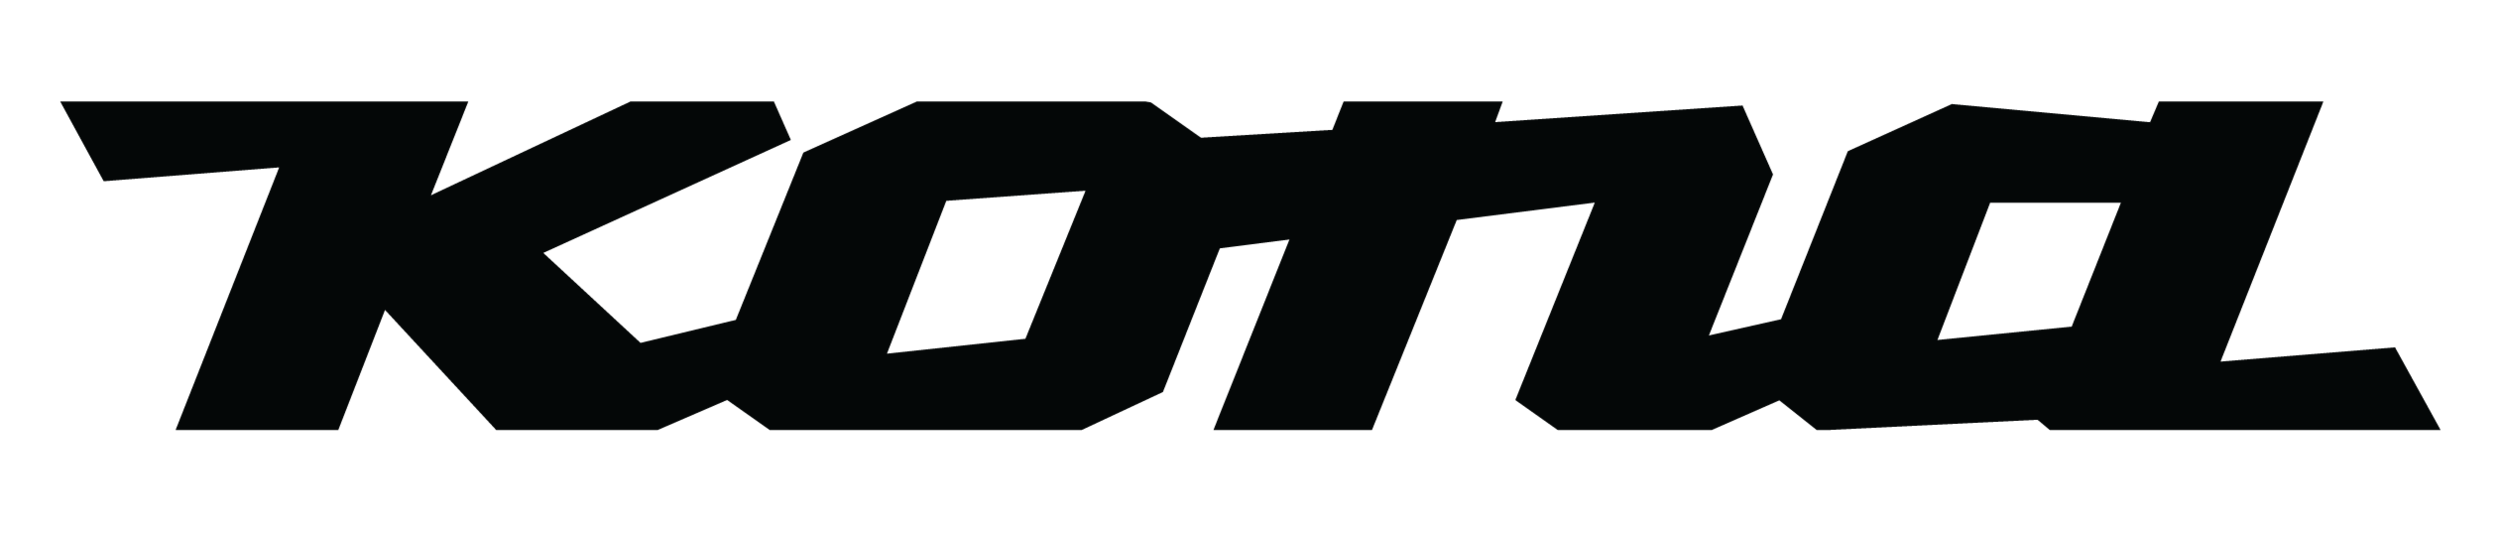 2K19 Kona Wordmark.png